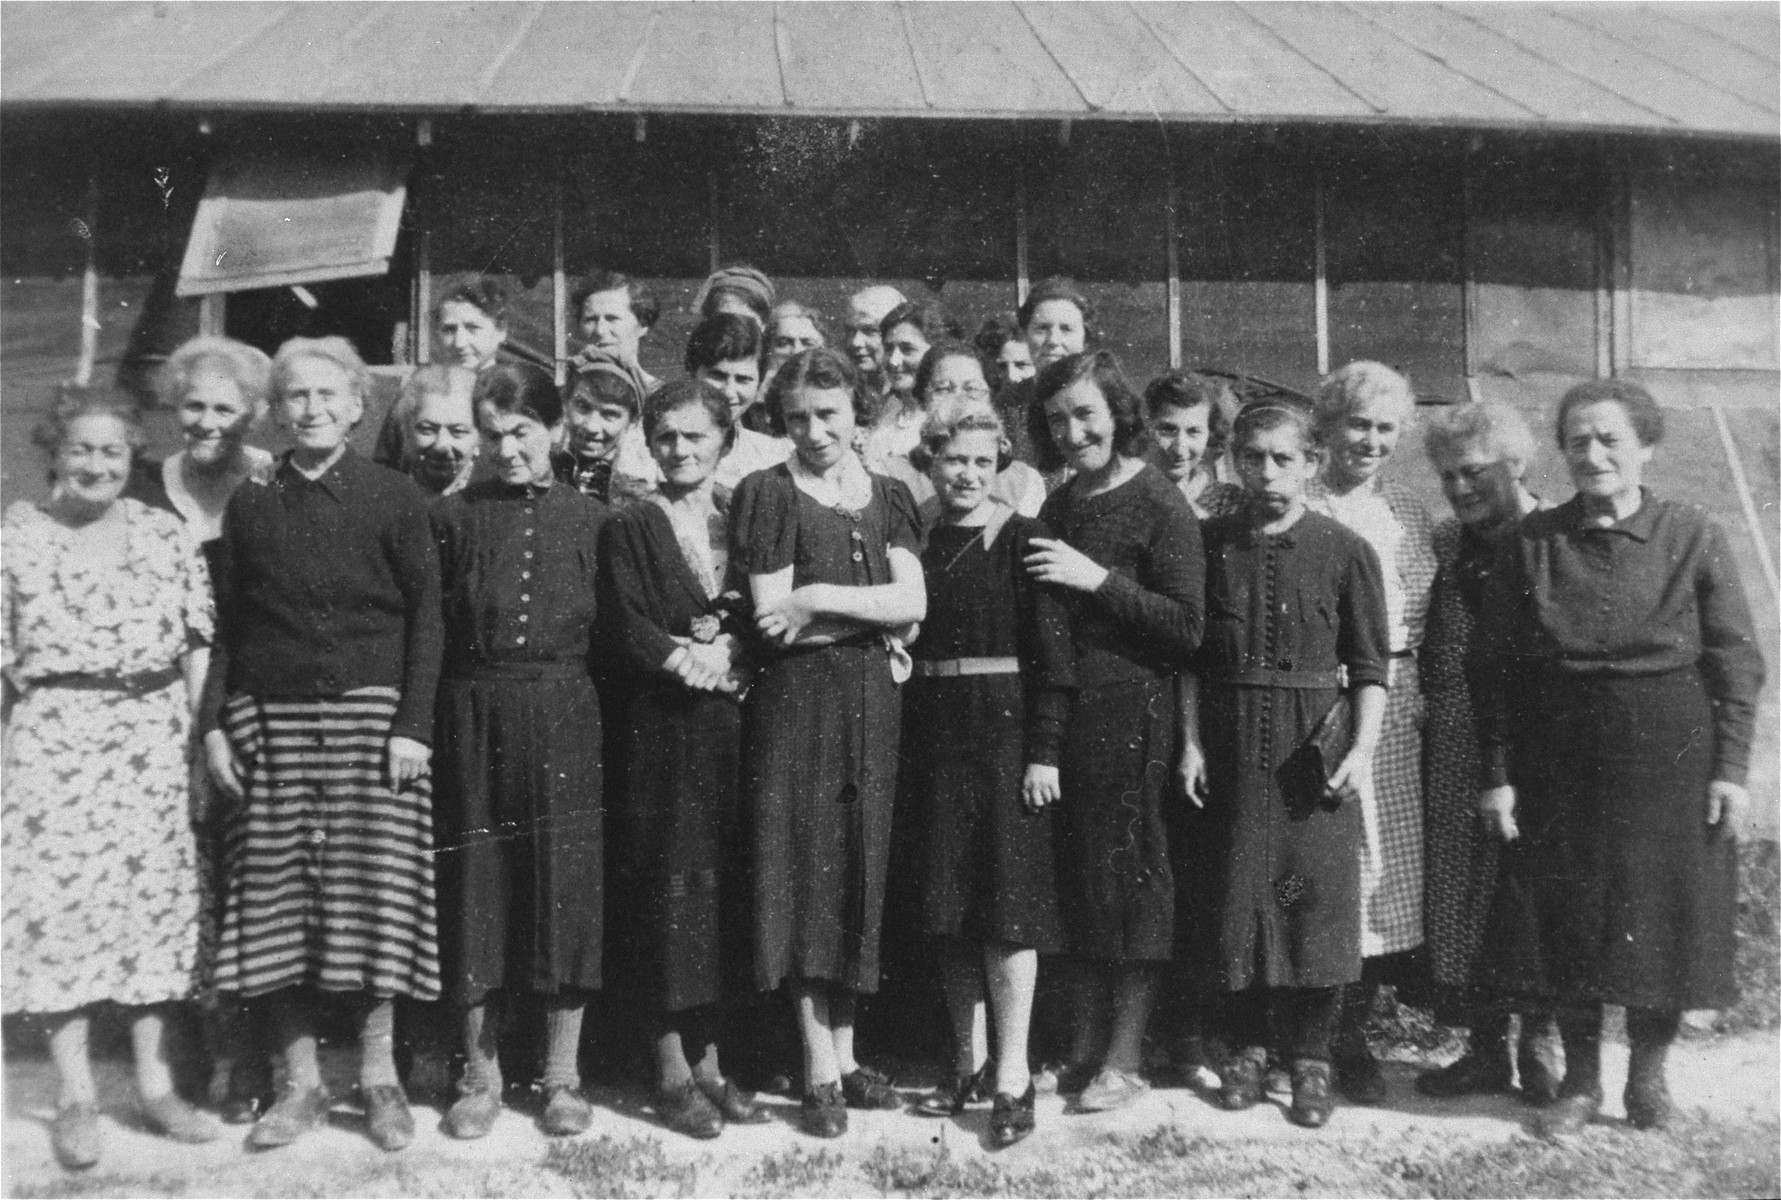 A group of female prisoners pose in front of a barracks in Ilot M at Gurs.   Among those pictured are Julie Bickard Rothschild  (1887-1946) from Altdorf, a relative of the donor, Hanna Meyer-Moses.